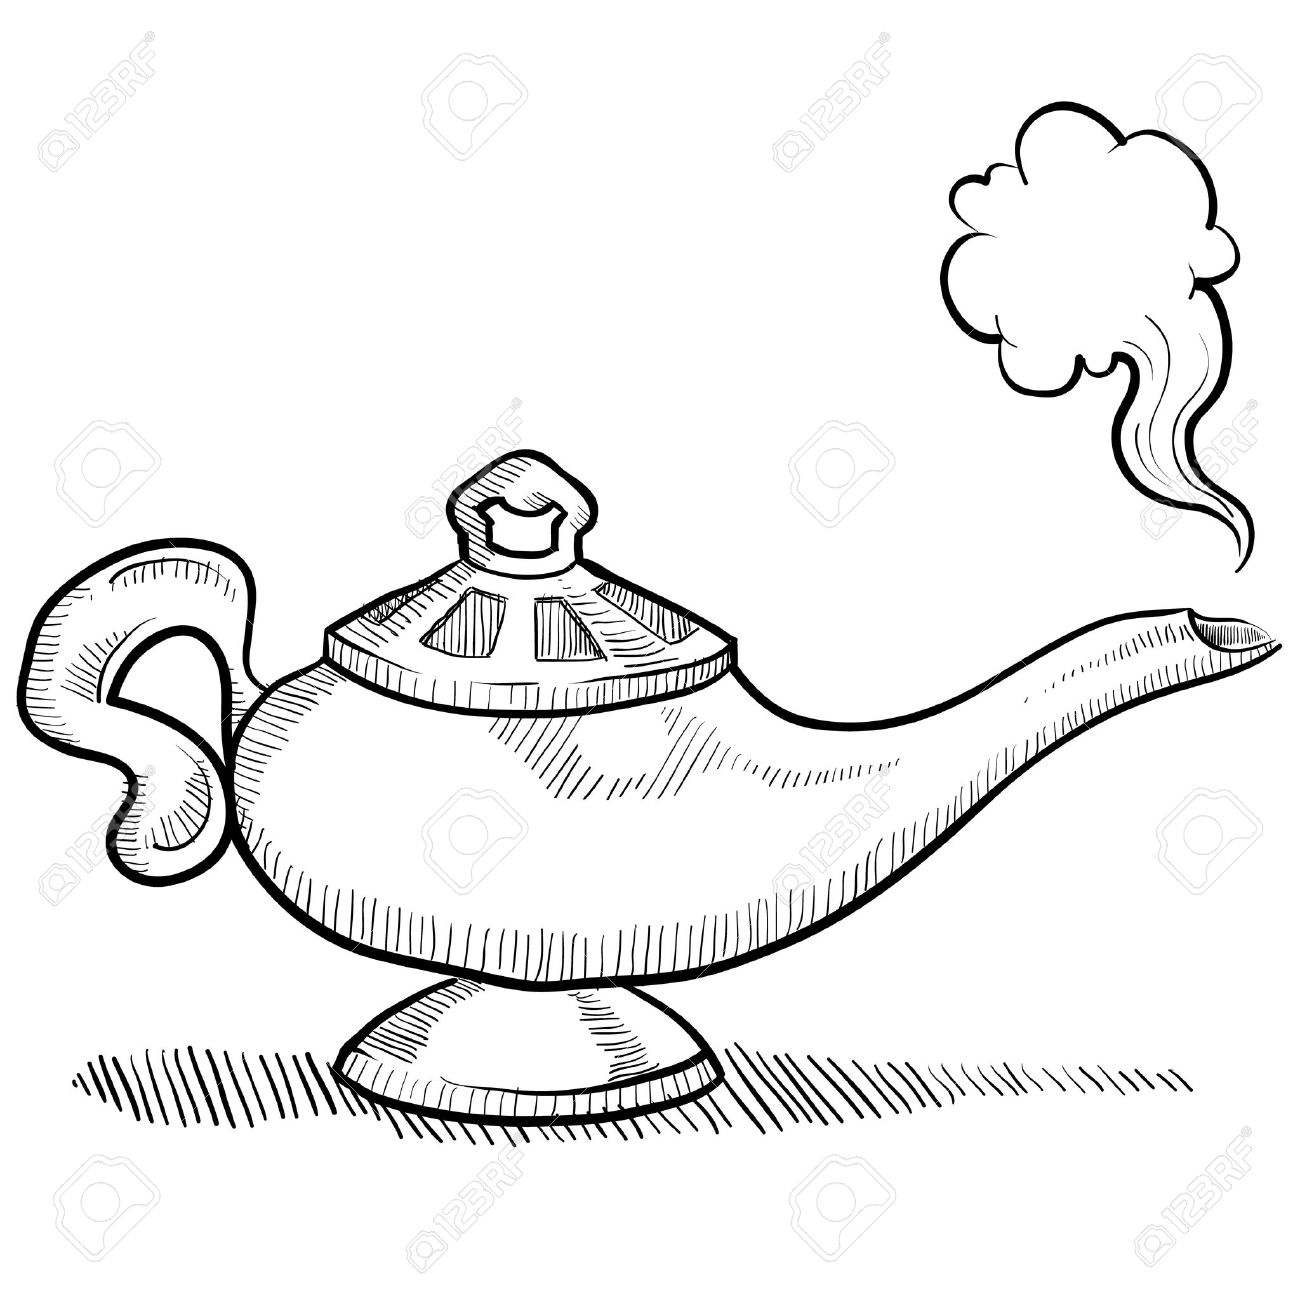 1300x1300 Doodle Style Genie Aladdin S Lamp Illustration Royalty Free